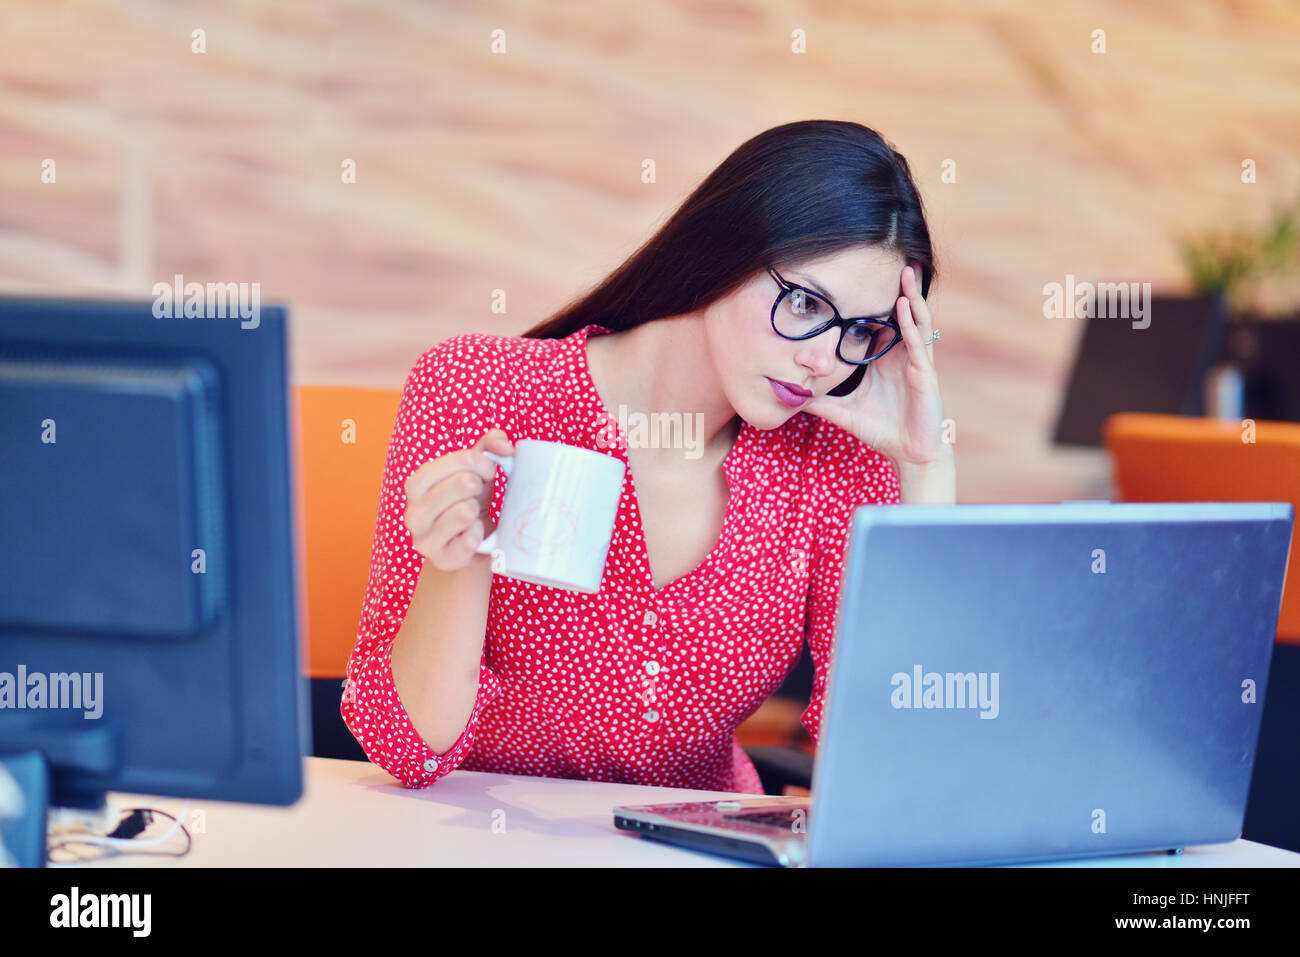 Tired overworked businesswoman at office covering her face with hands - Stock Image